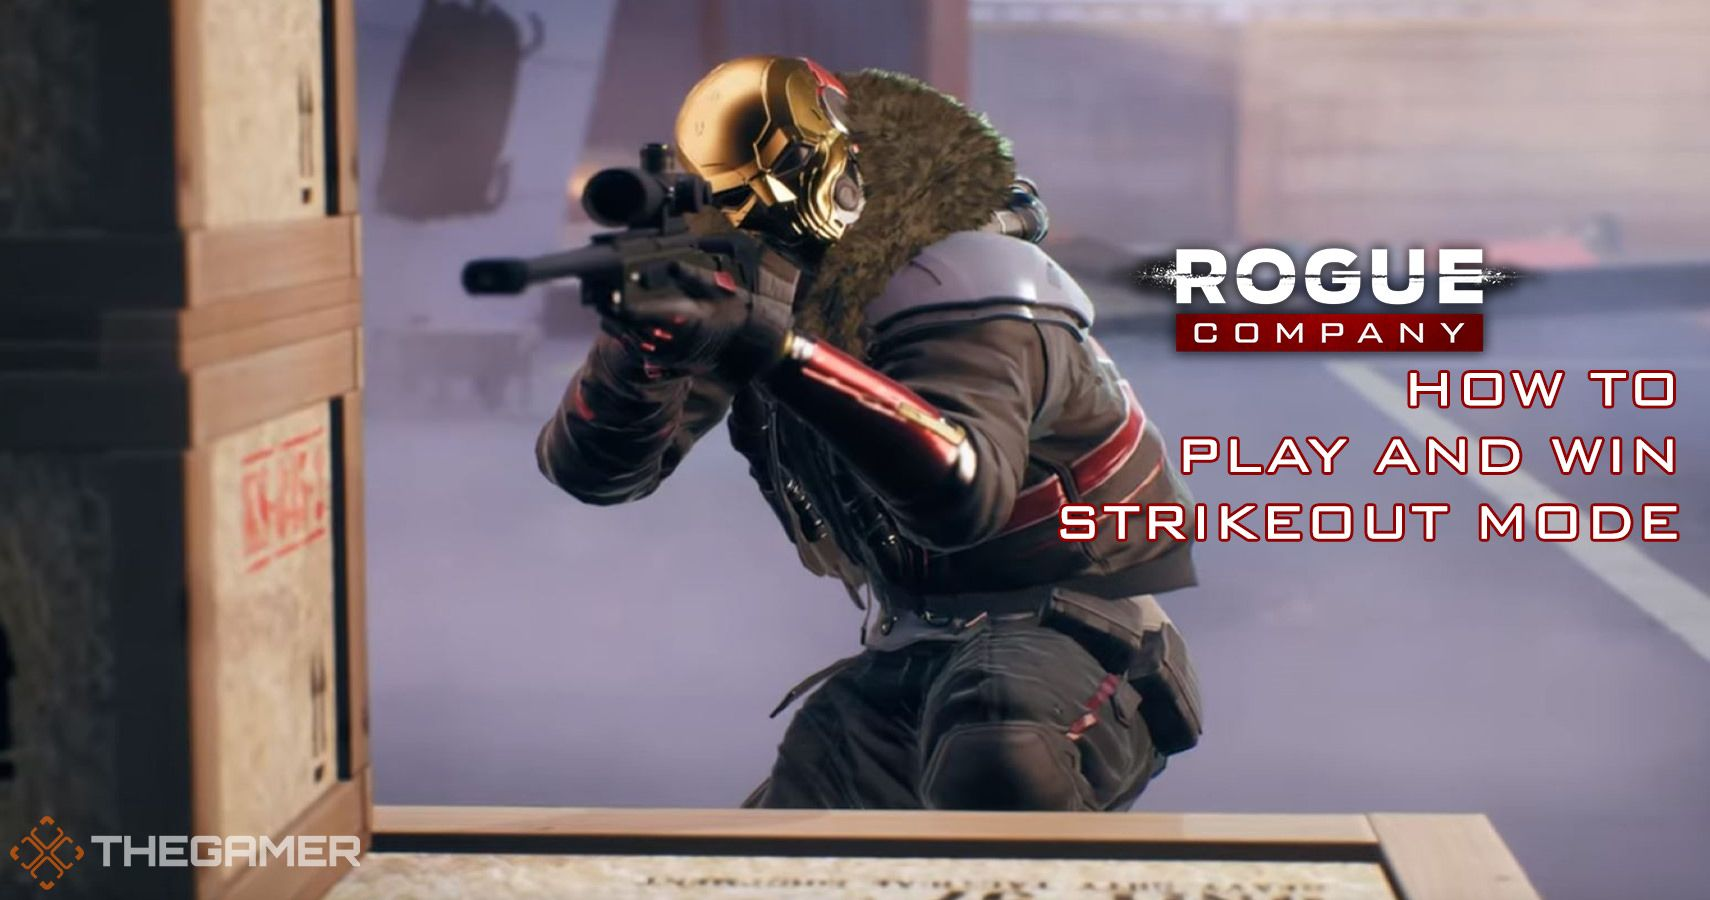 Rogue Company: How To Play And Win Strikeout Mode